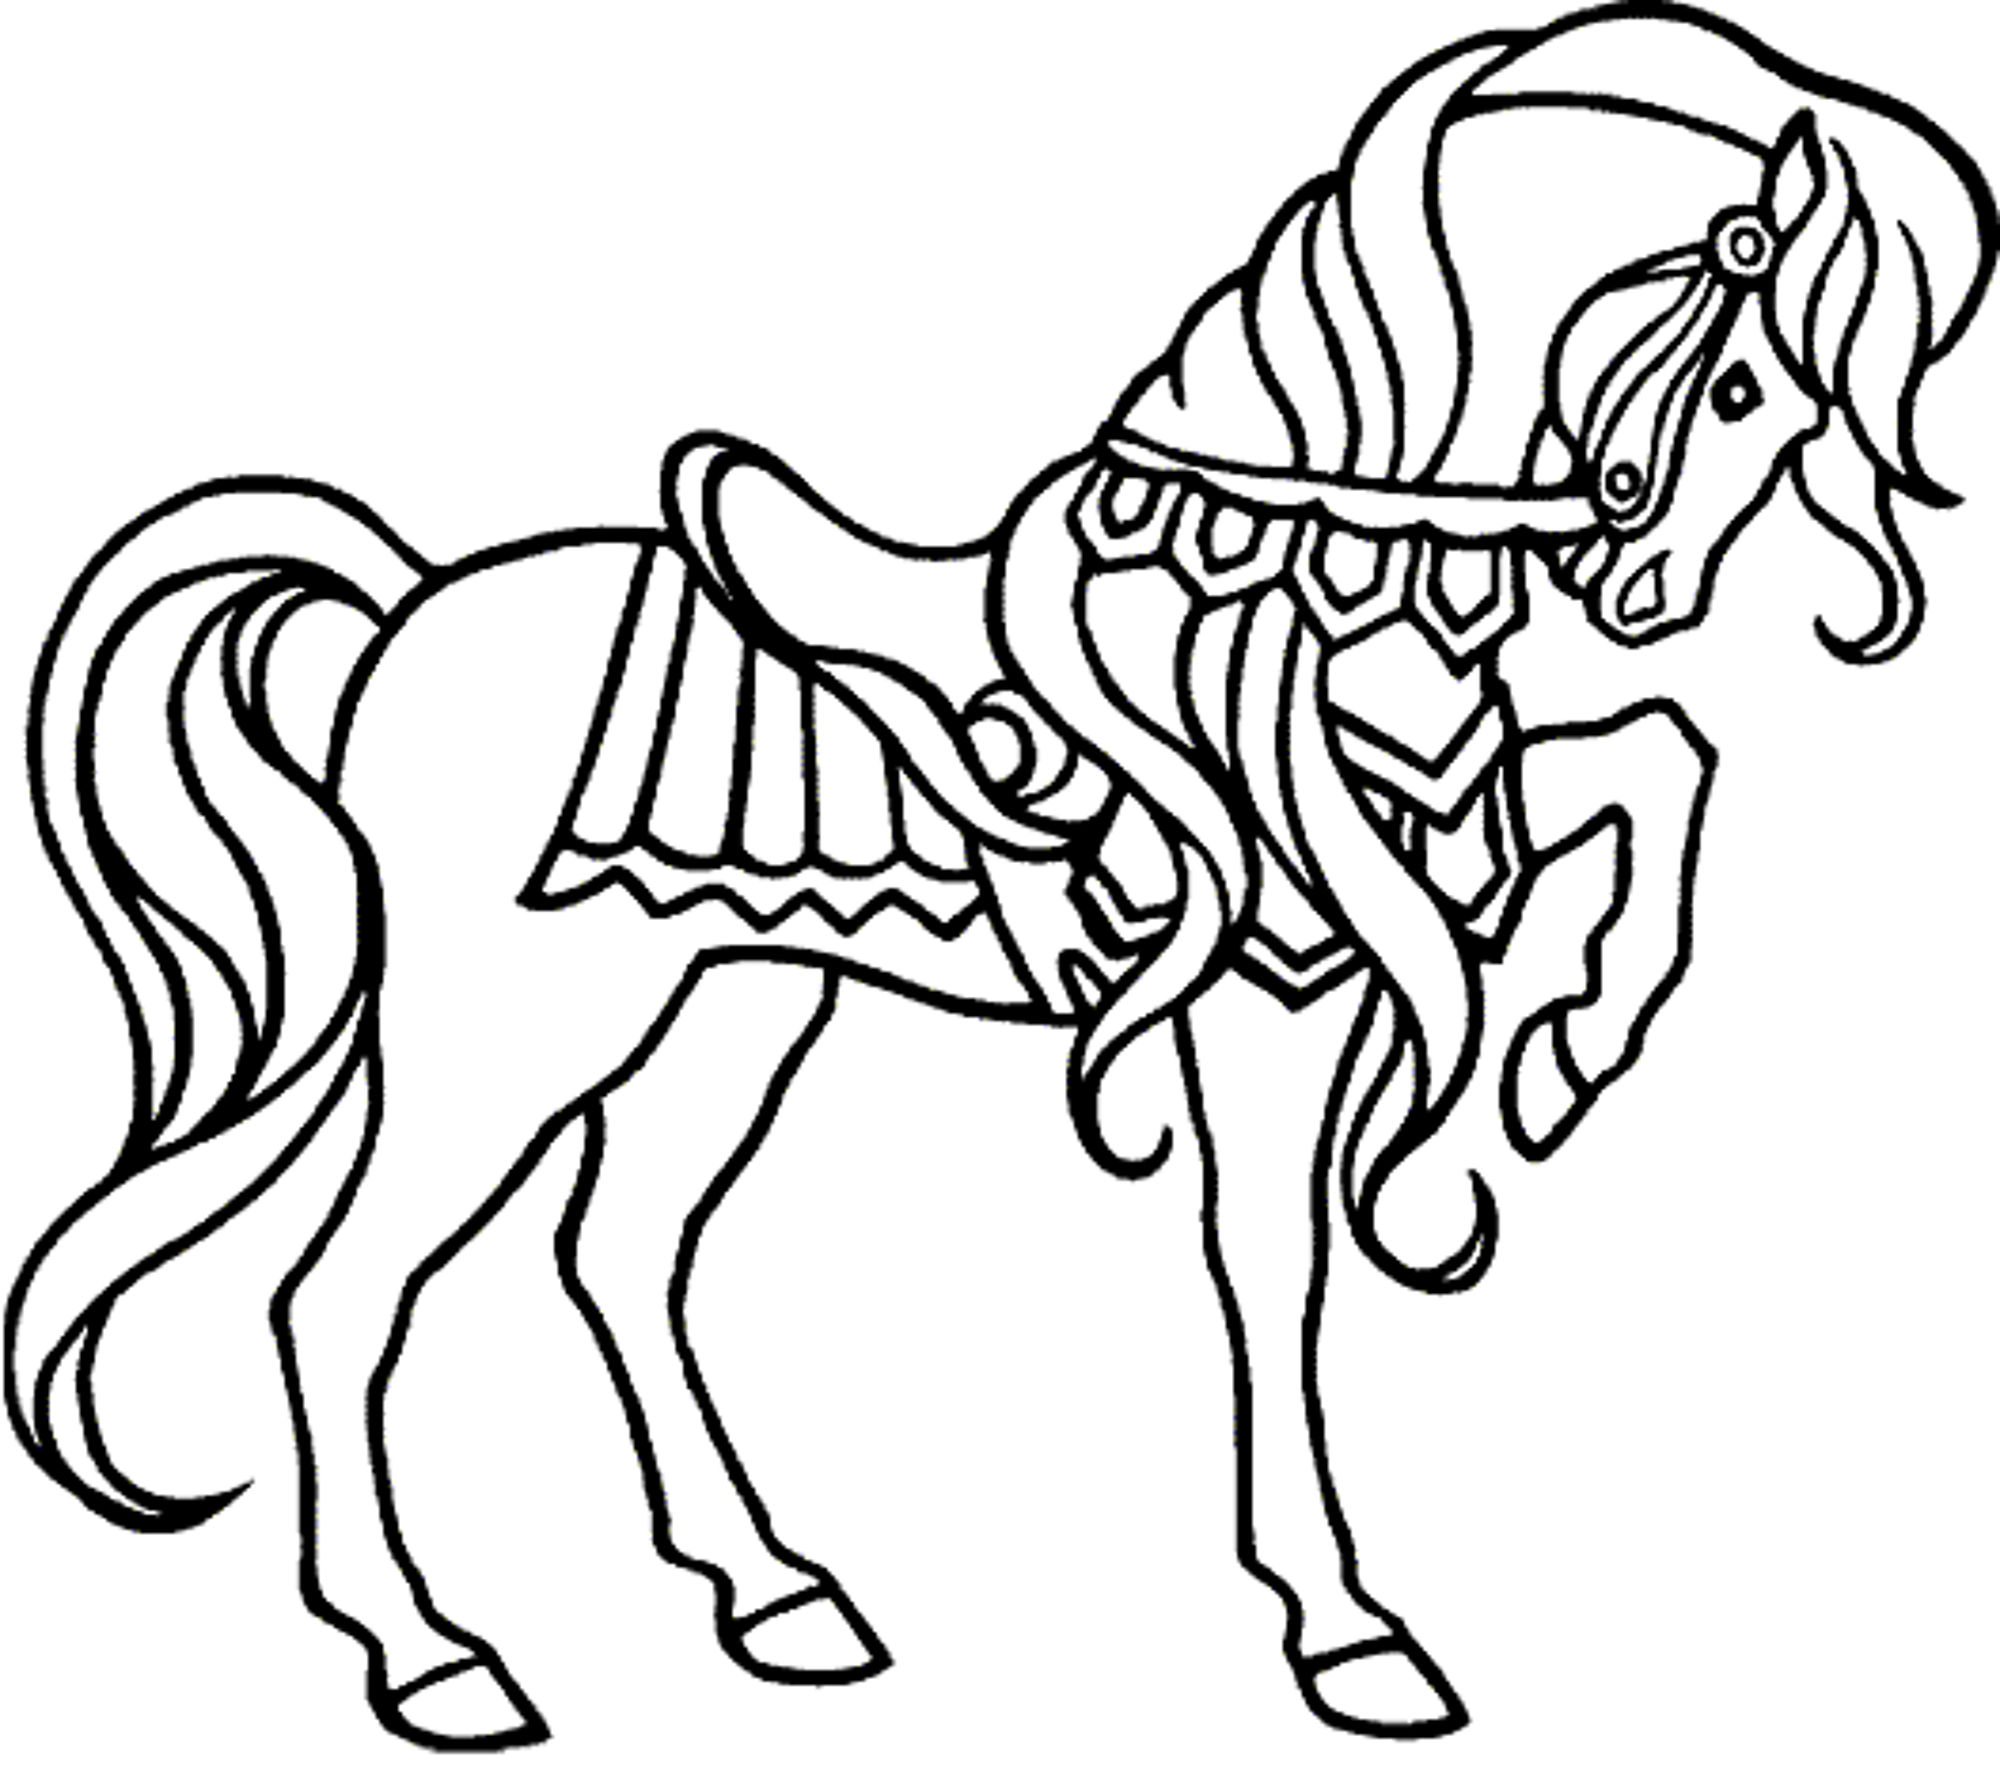 horse drawing coloring pages free and printable horse coloring pages 101 coloring horse drawing coloring pages